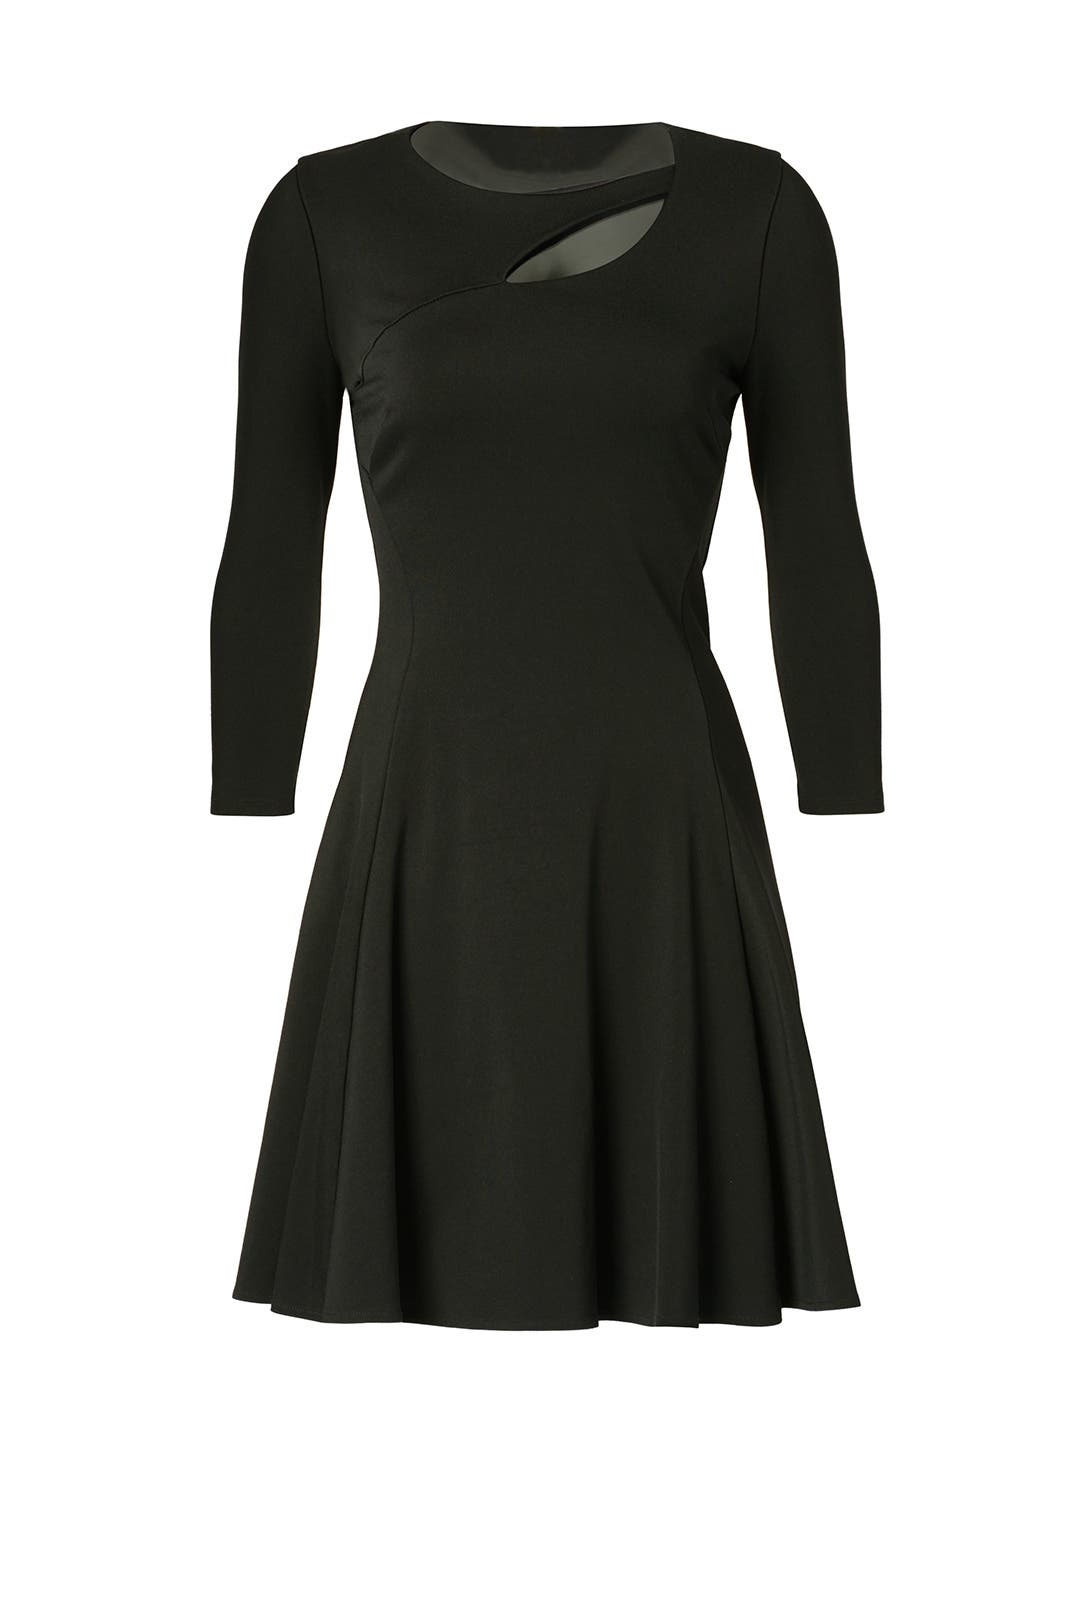 Stormchaser Dress by Halston Heritage